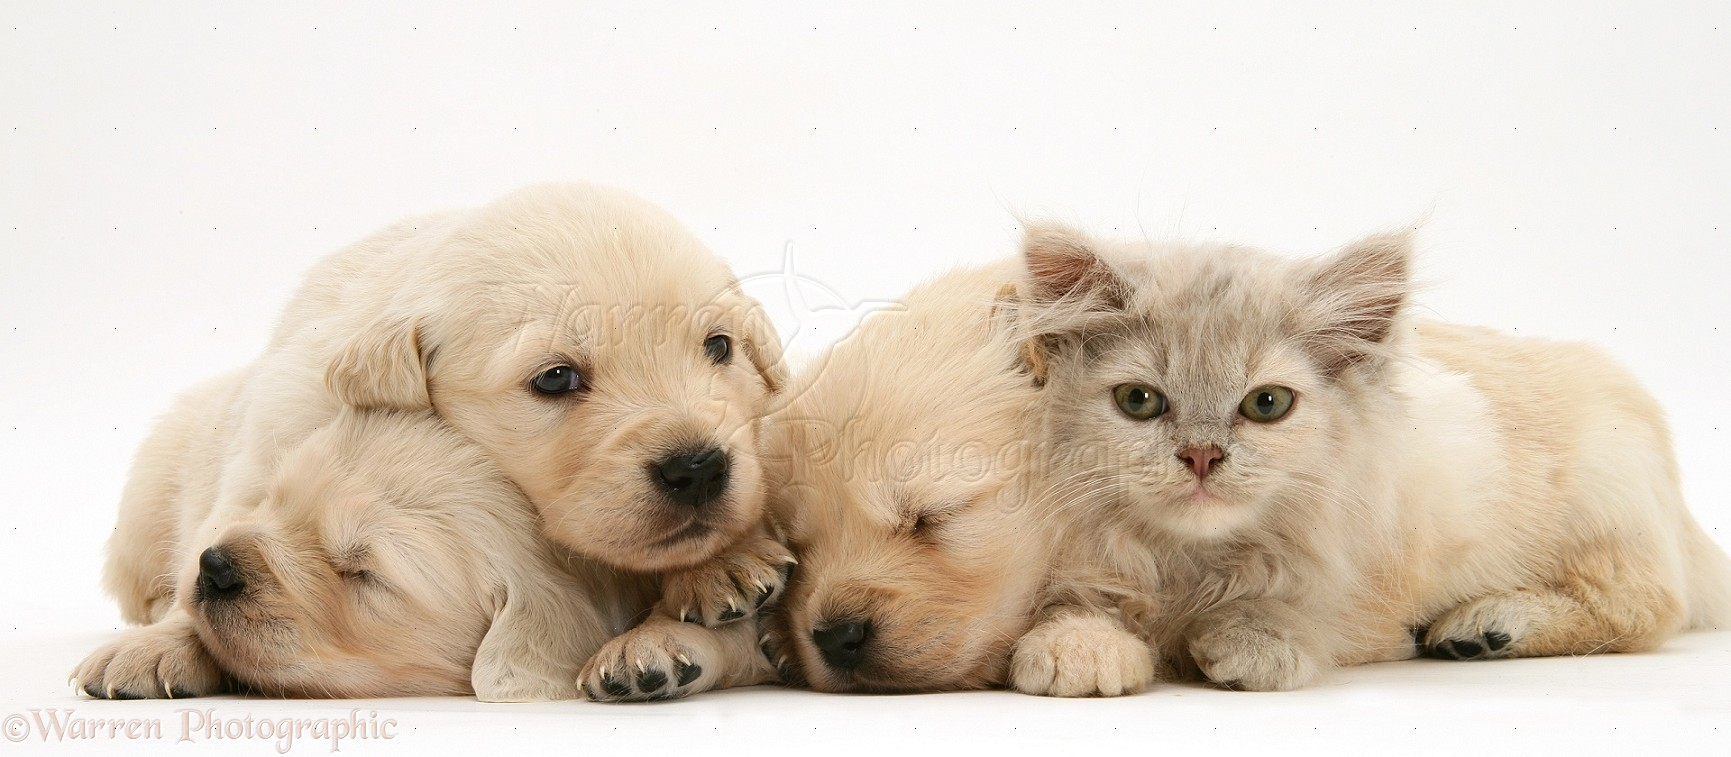 Cute Baby Kittens And Puppies Sleeping cute baby puppies related ...